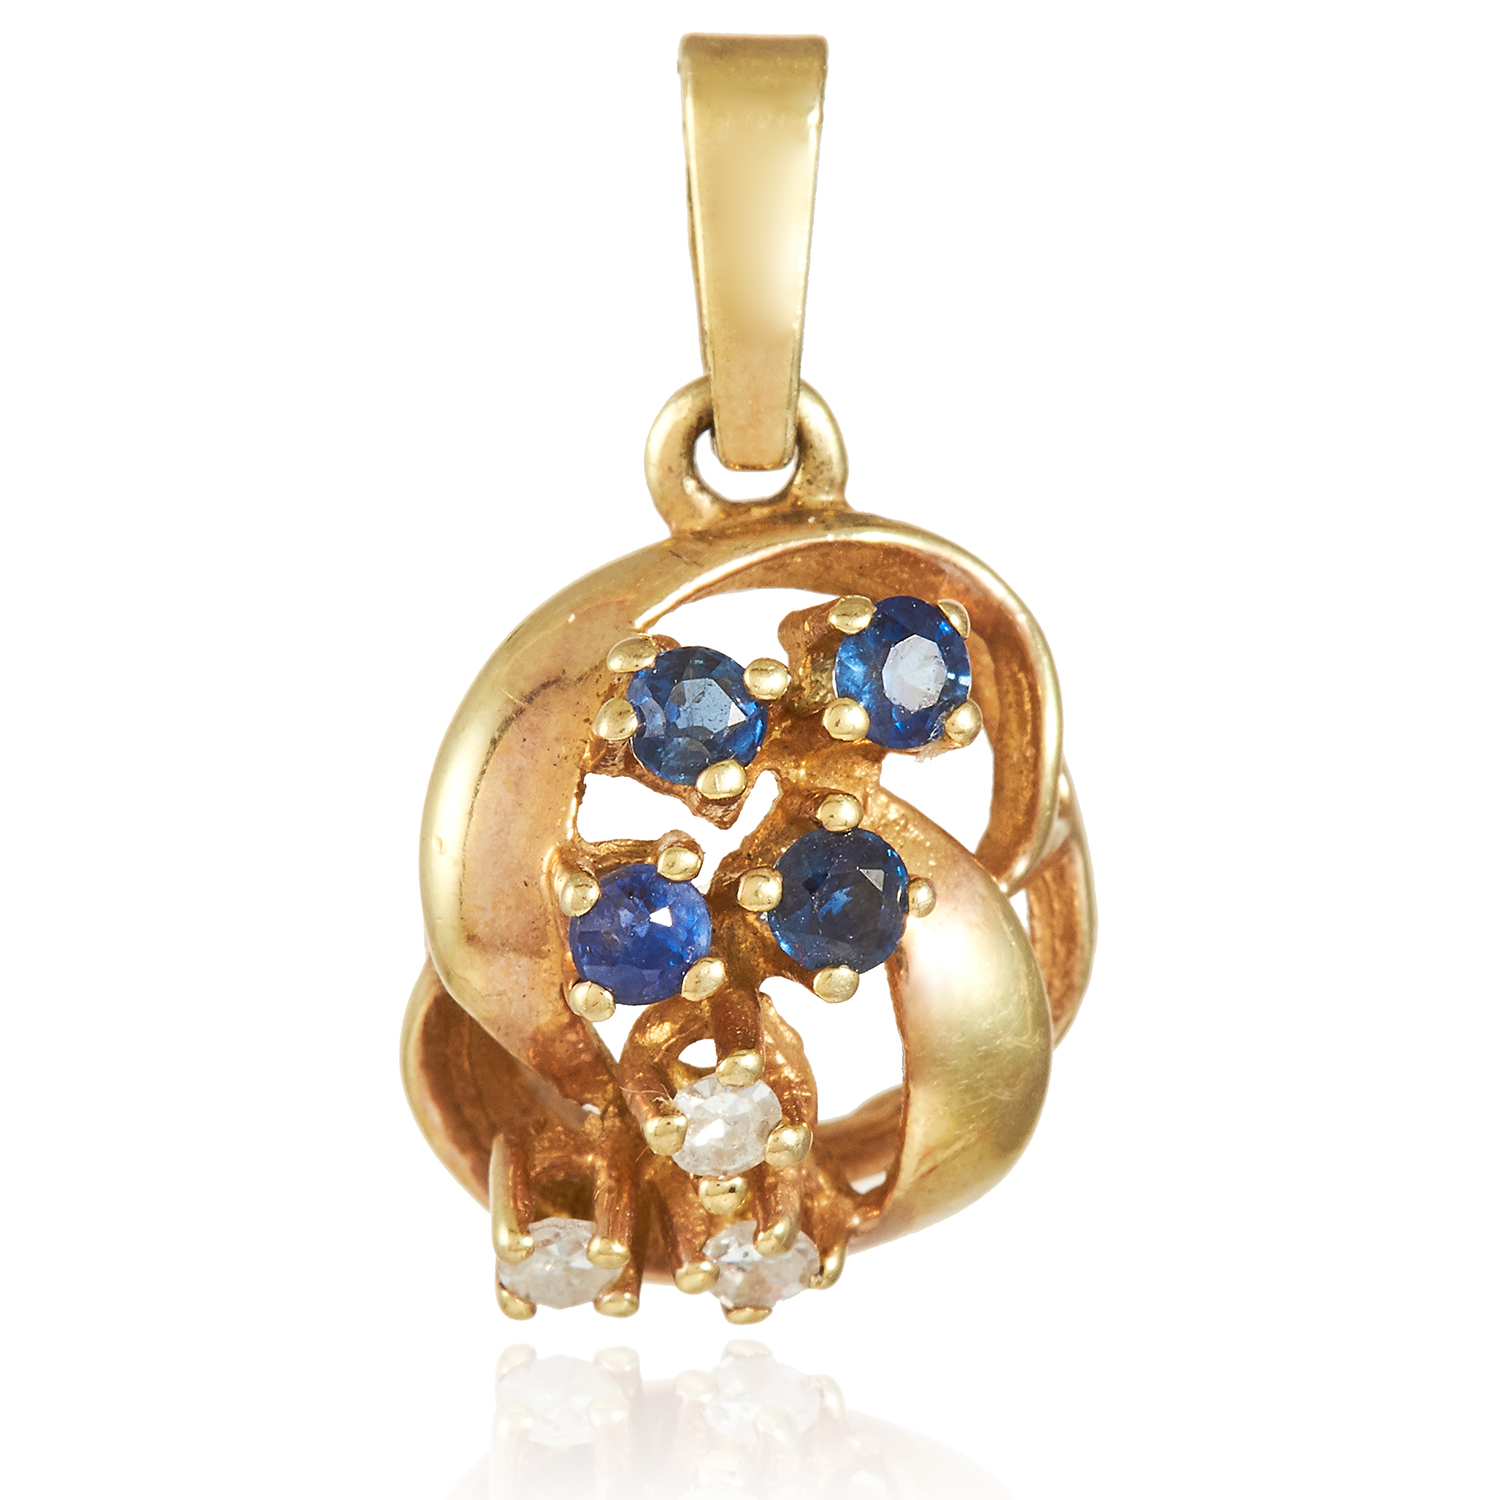 A BLUE AND WHITE GEM SET PENDANT in yellow gold, set with four round cut blue gemstones and three